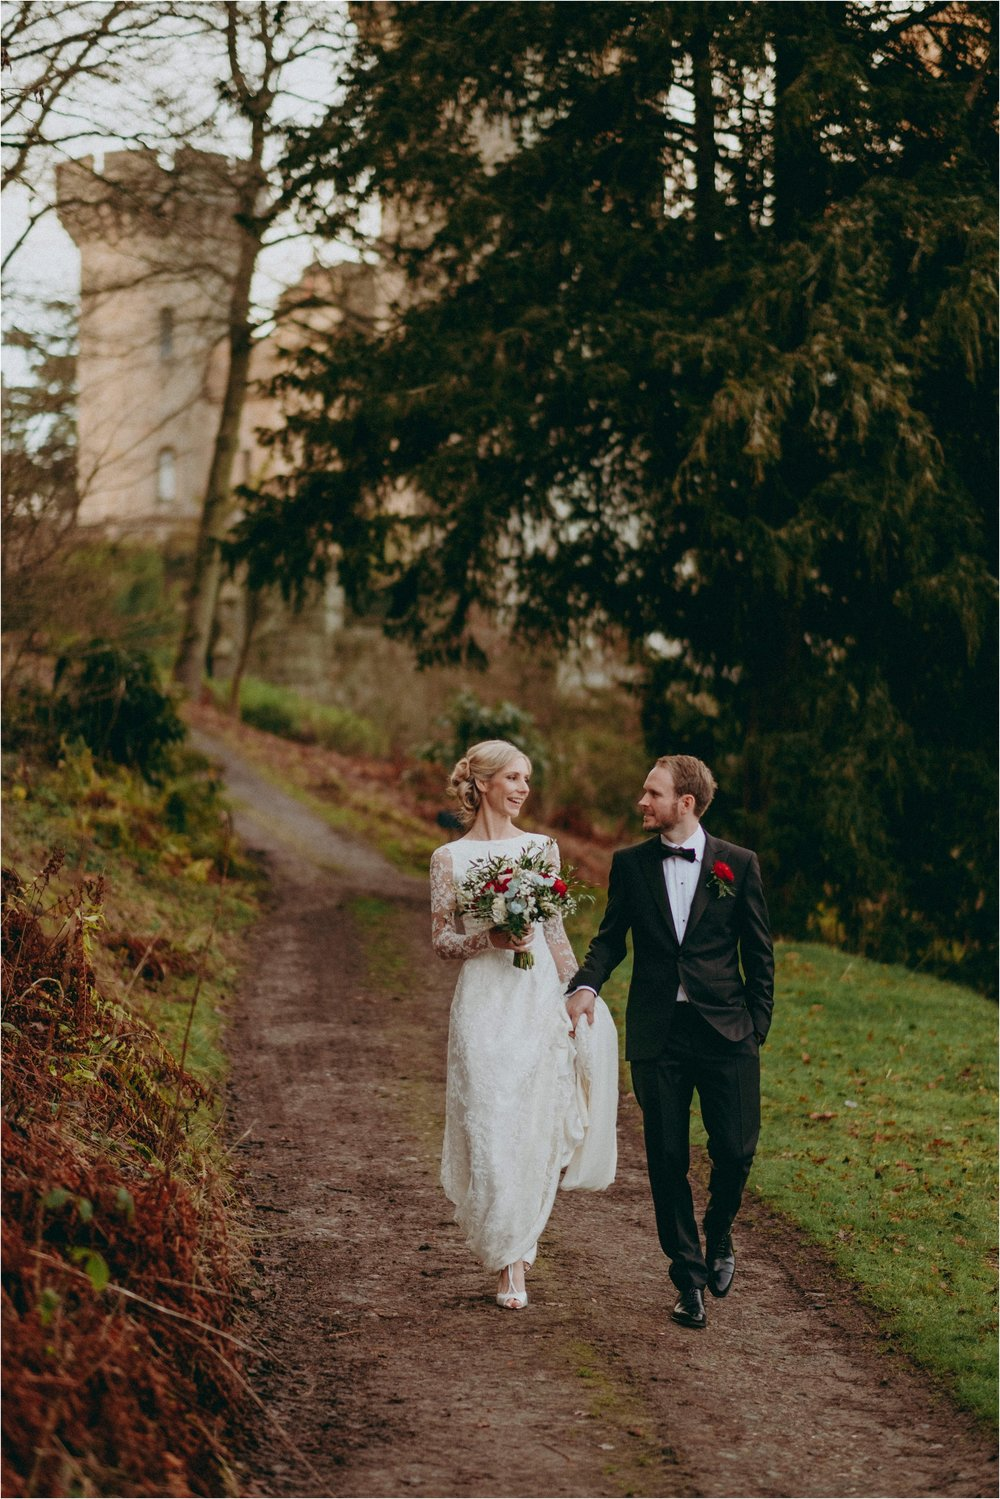 Herefordshire Eastnor Castle wedding photographer_0144.jpg